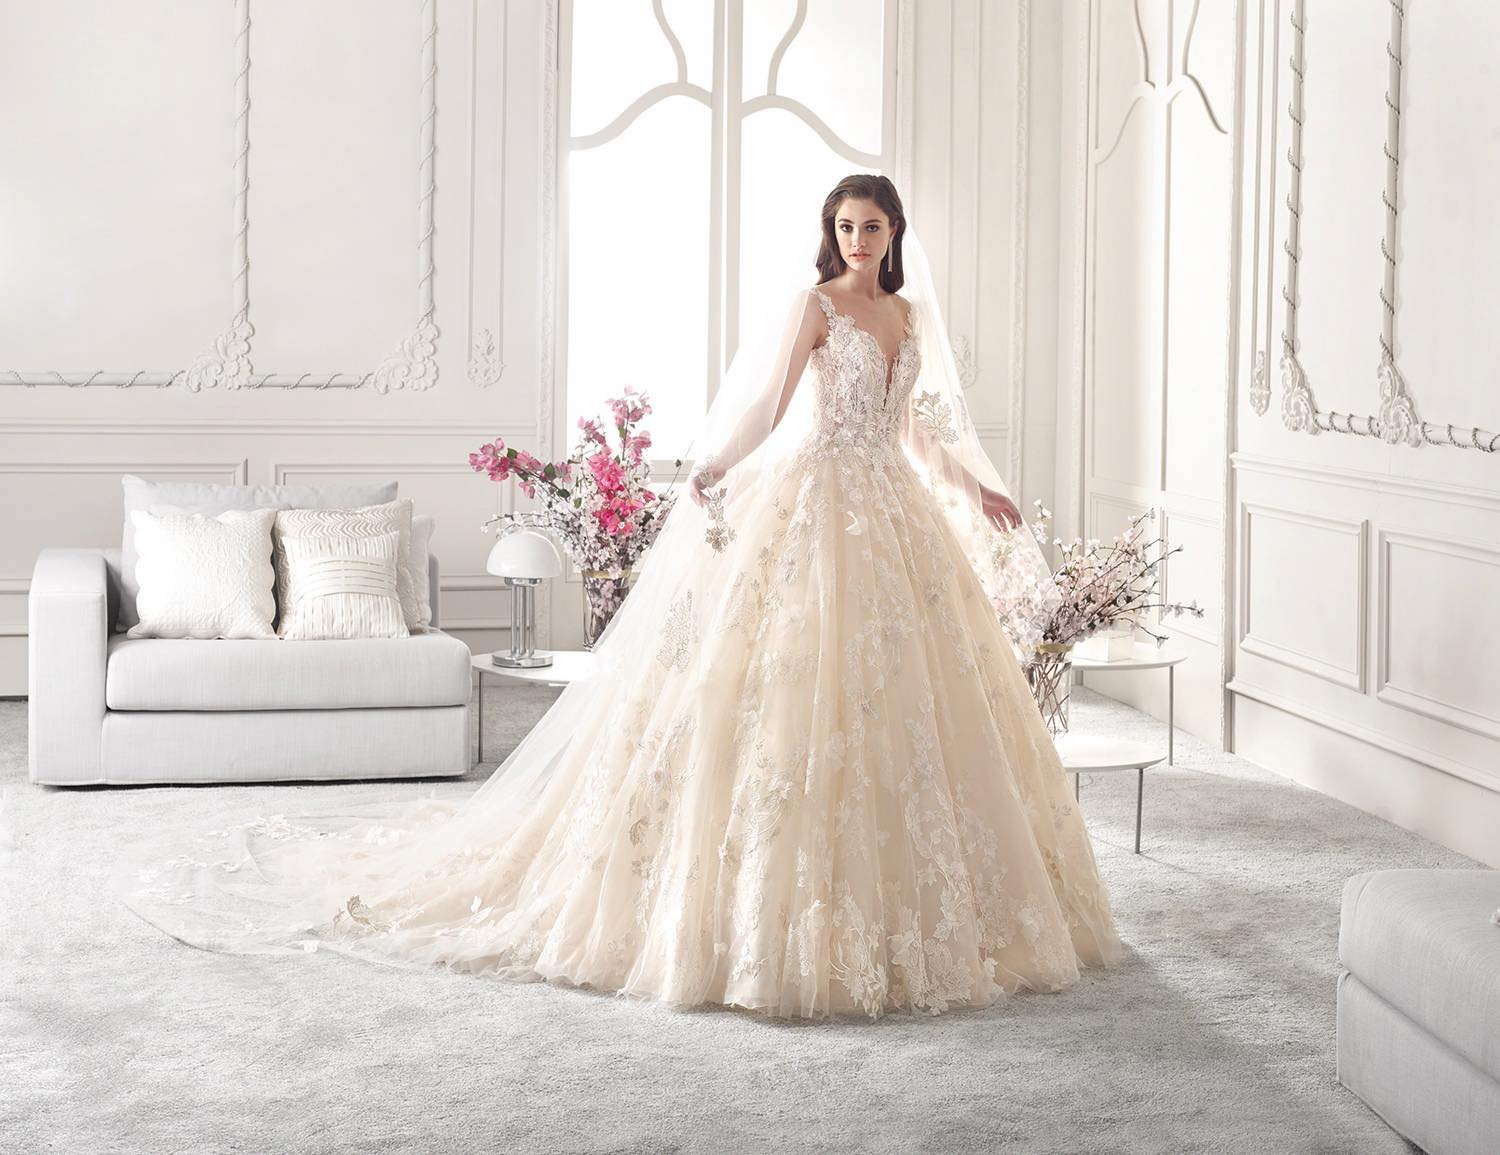 Bridal Boutique Retail Business - Established 20+ Years